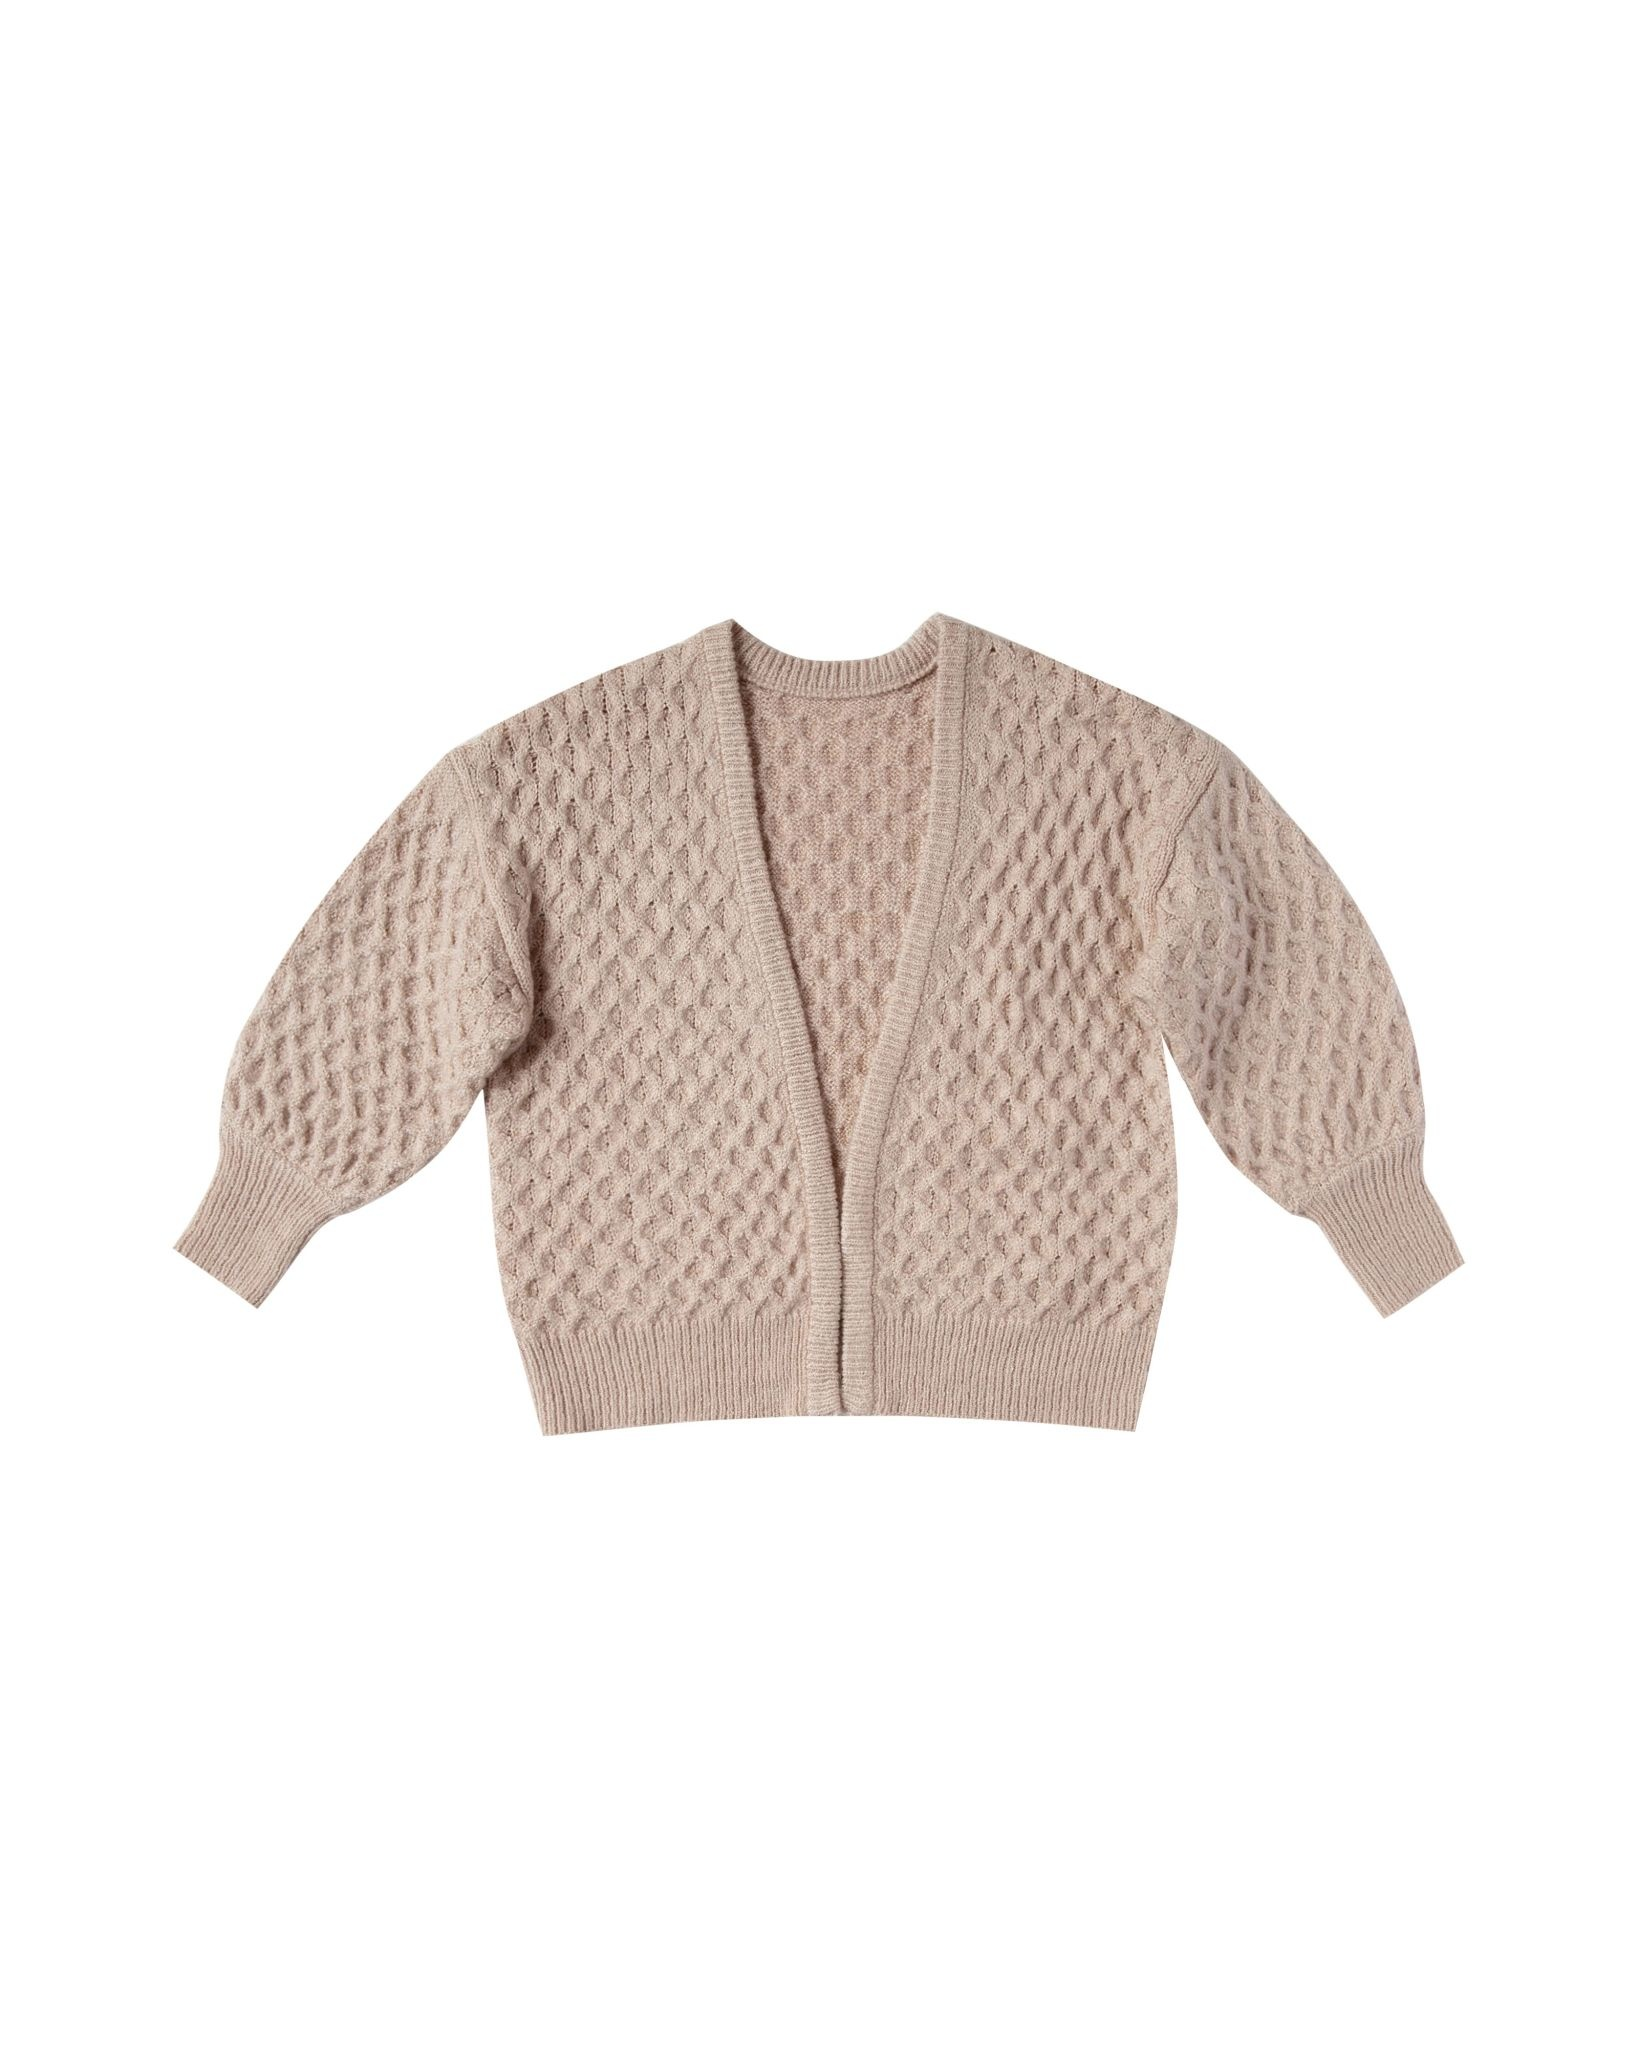 RYLEE AND CRU Gretel Cardigan 8-9